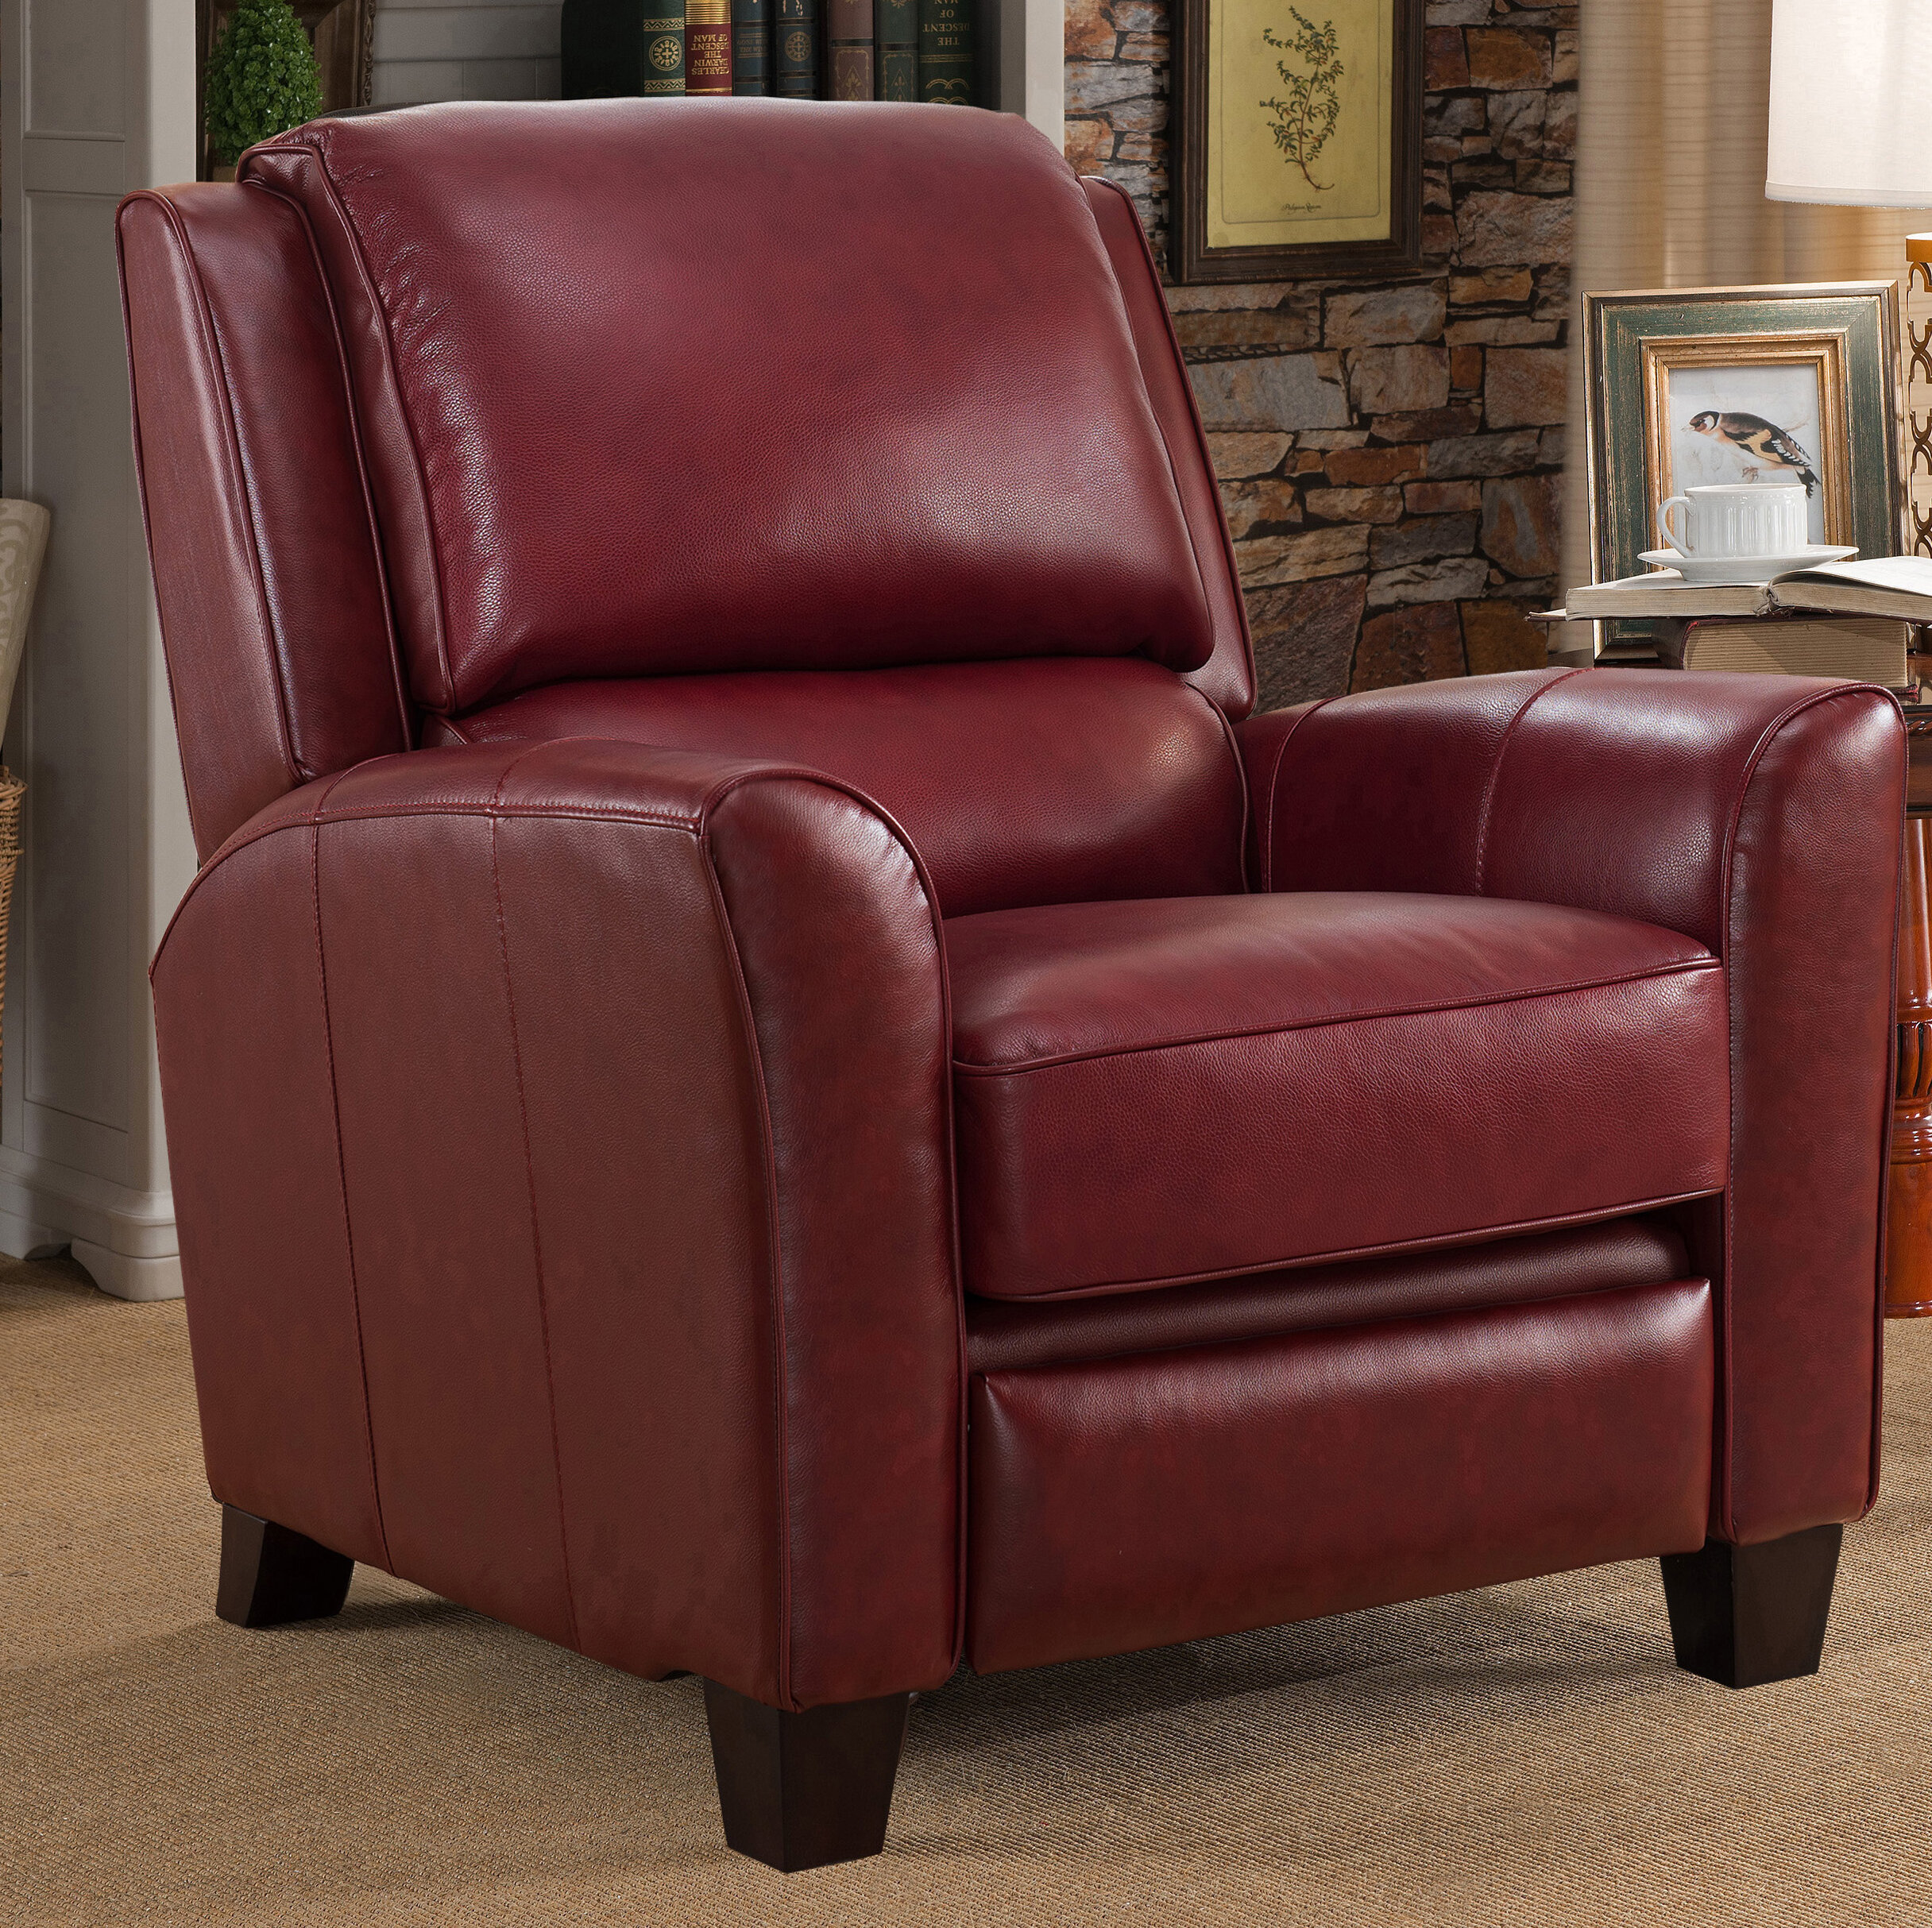 Surrett Red Leather Manual Recliner